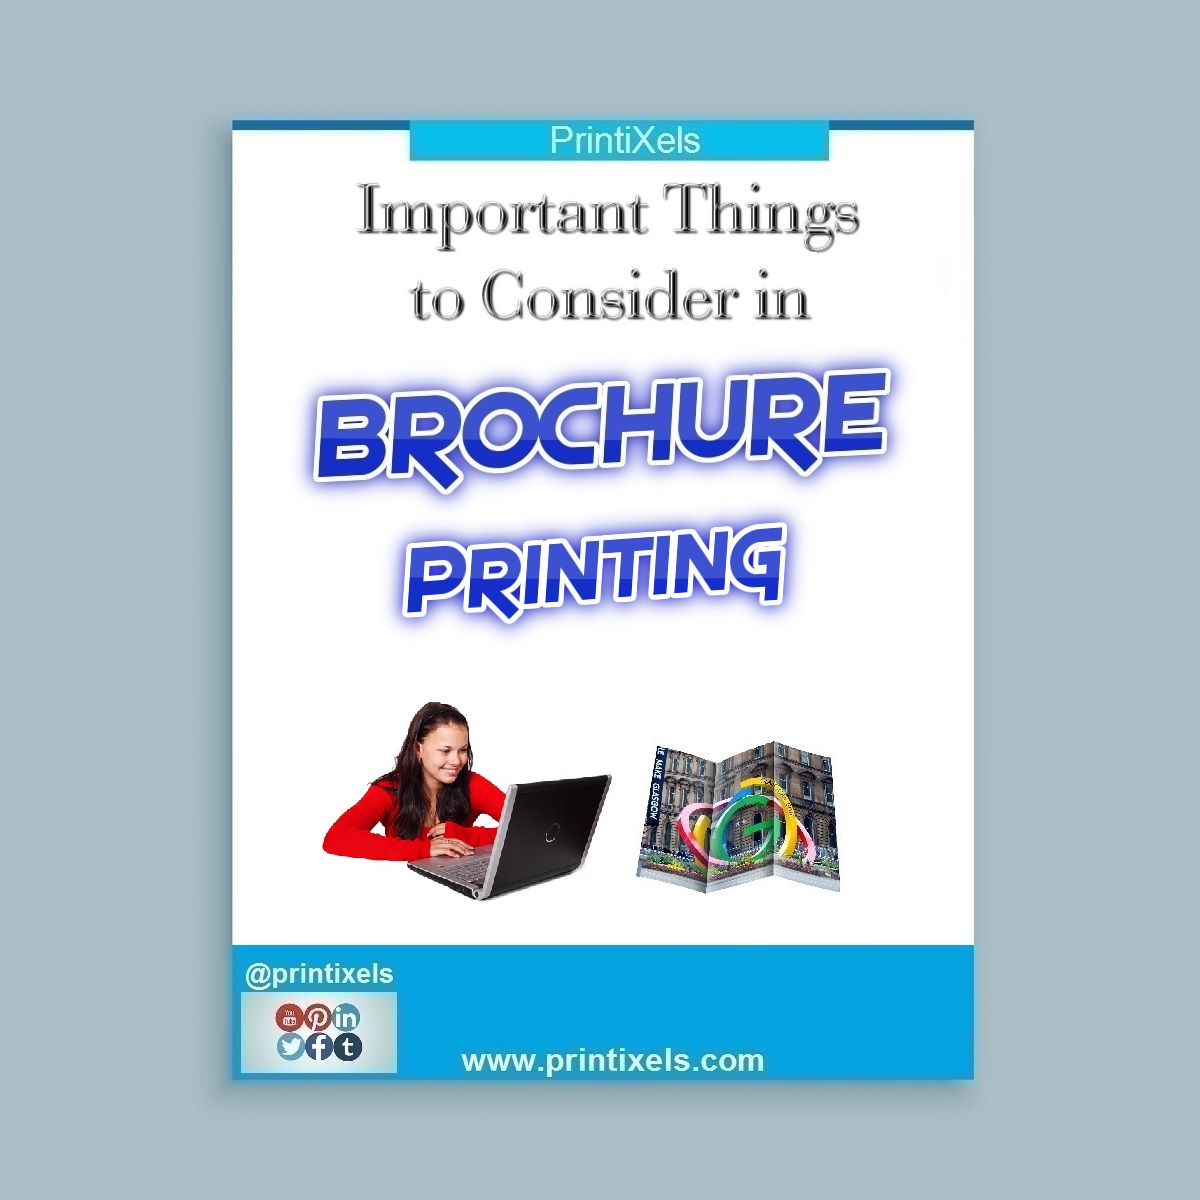 Brochure Printing: Important Things to Consider